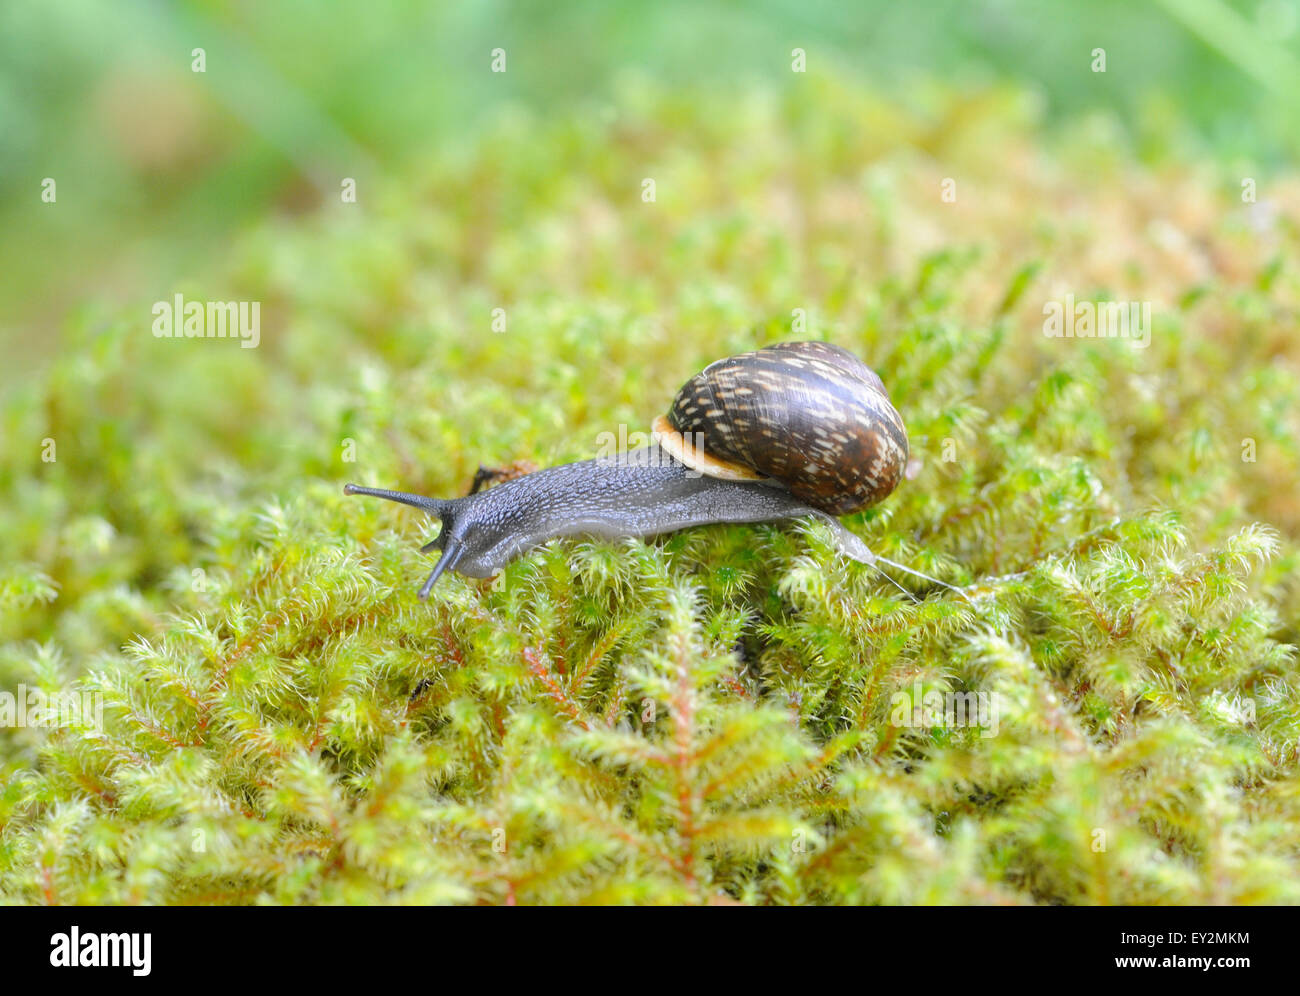 A copse snail (Arianta arbustorum) crawls across damp moss in wet oak woods leaving a trail of slime above Derwent Stock Photo